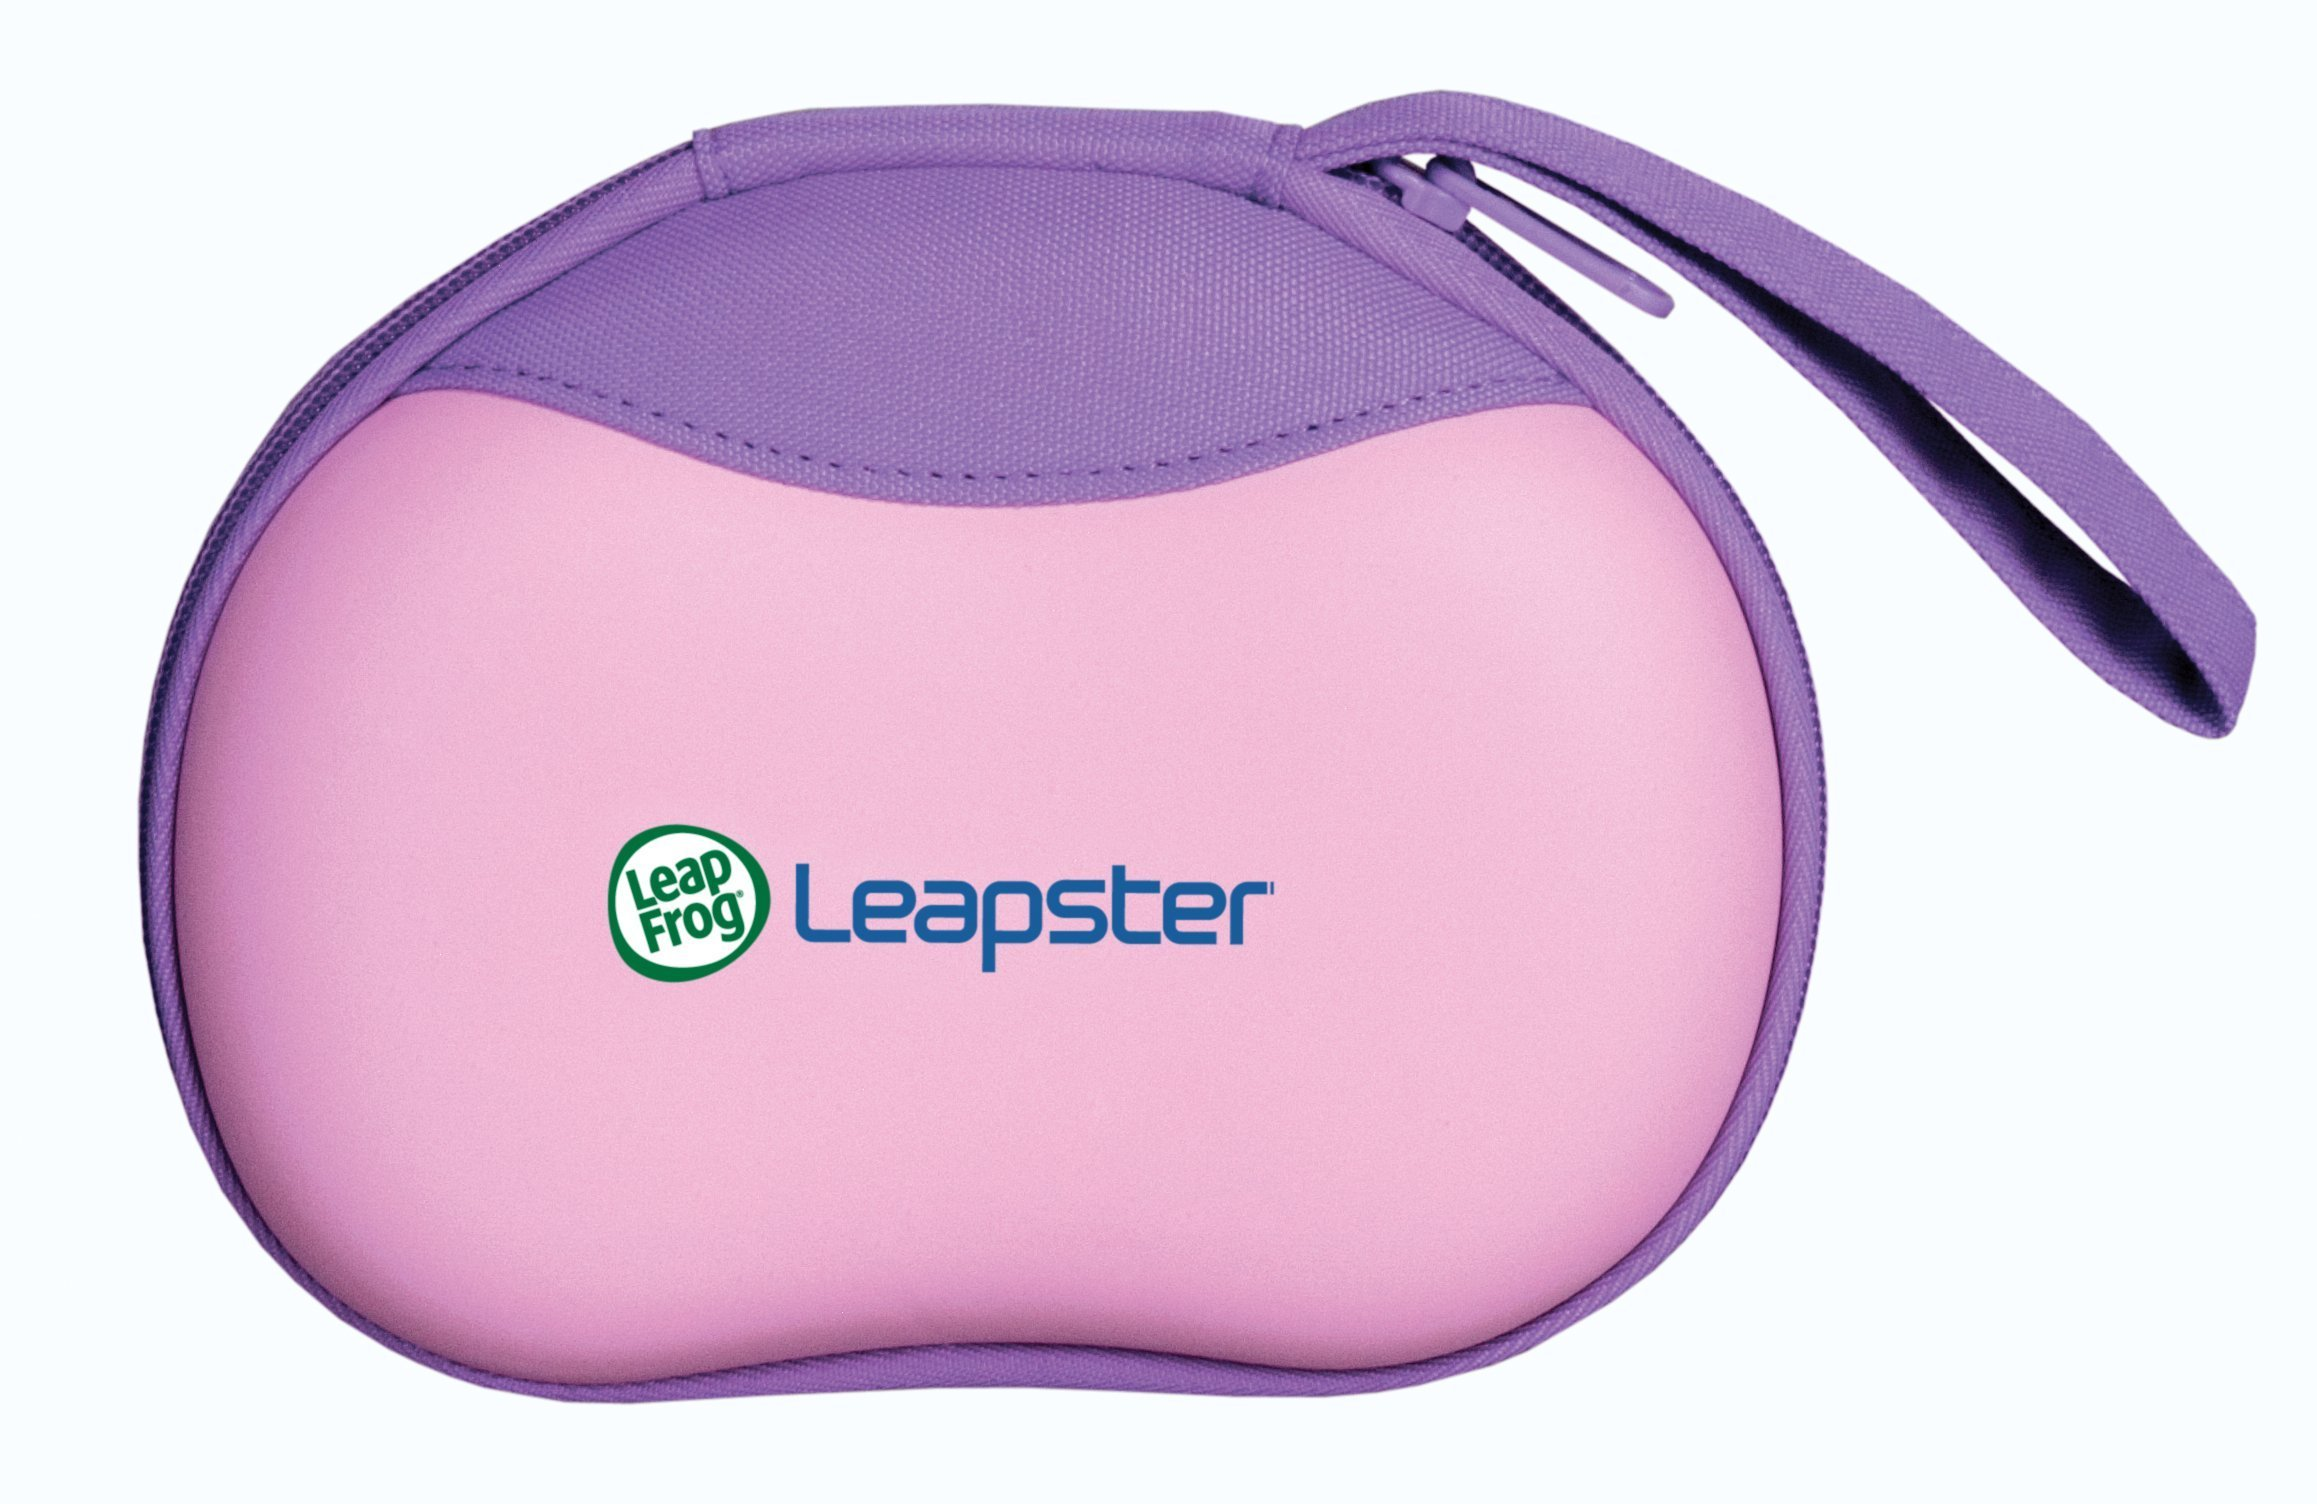 LeapFrog Leapster Carrying Case, Pink by LeapFrog (Image #1)